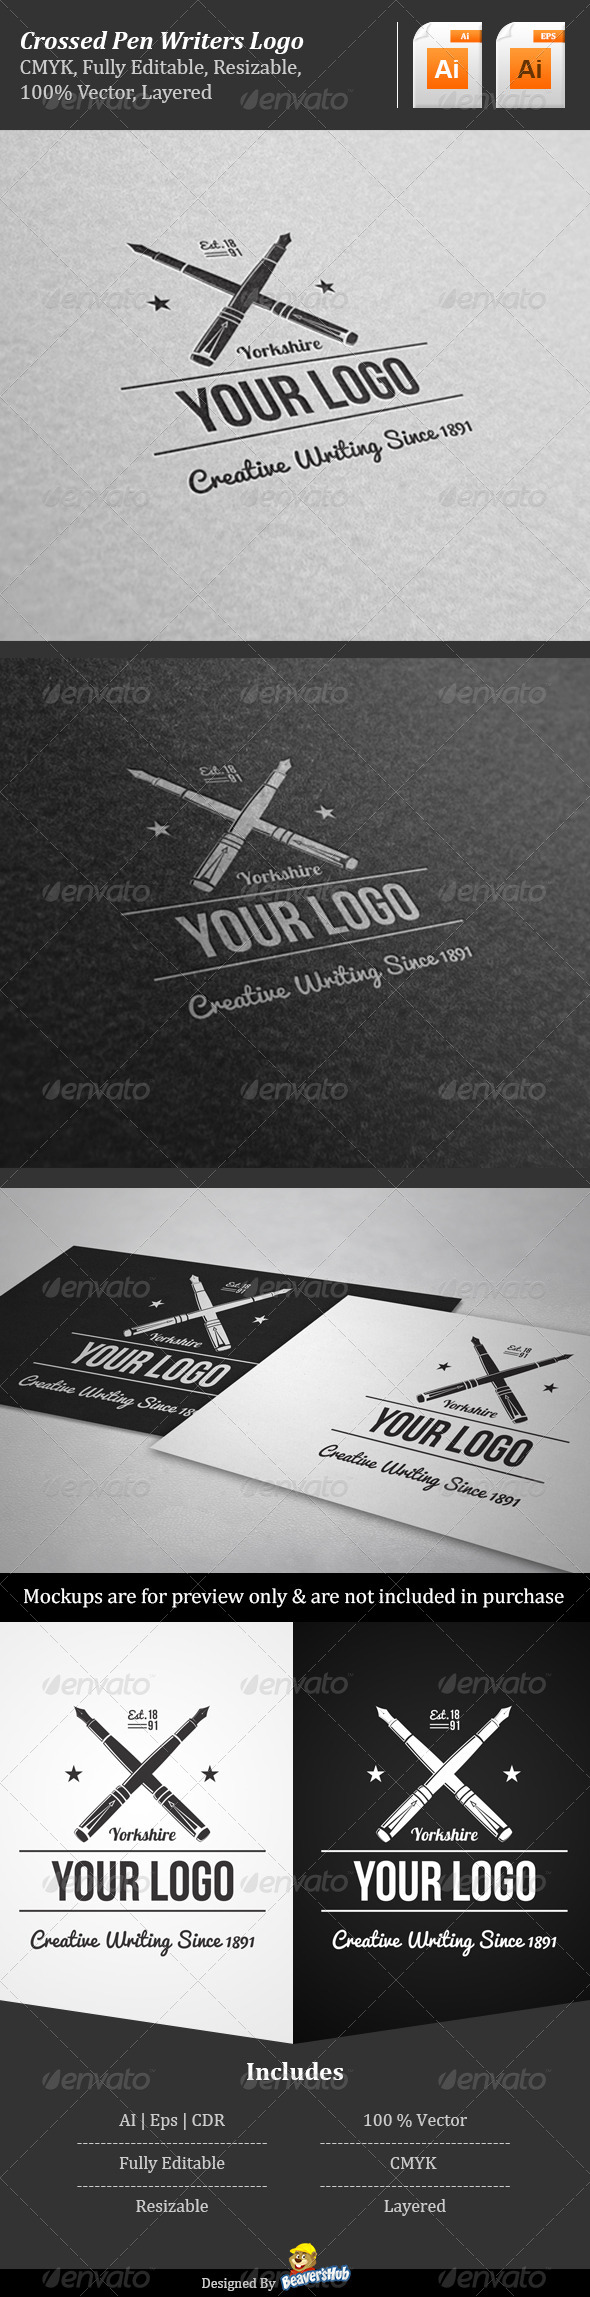 GraphicRiver Crossed Pen Writers Logo 5338791